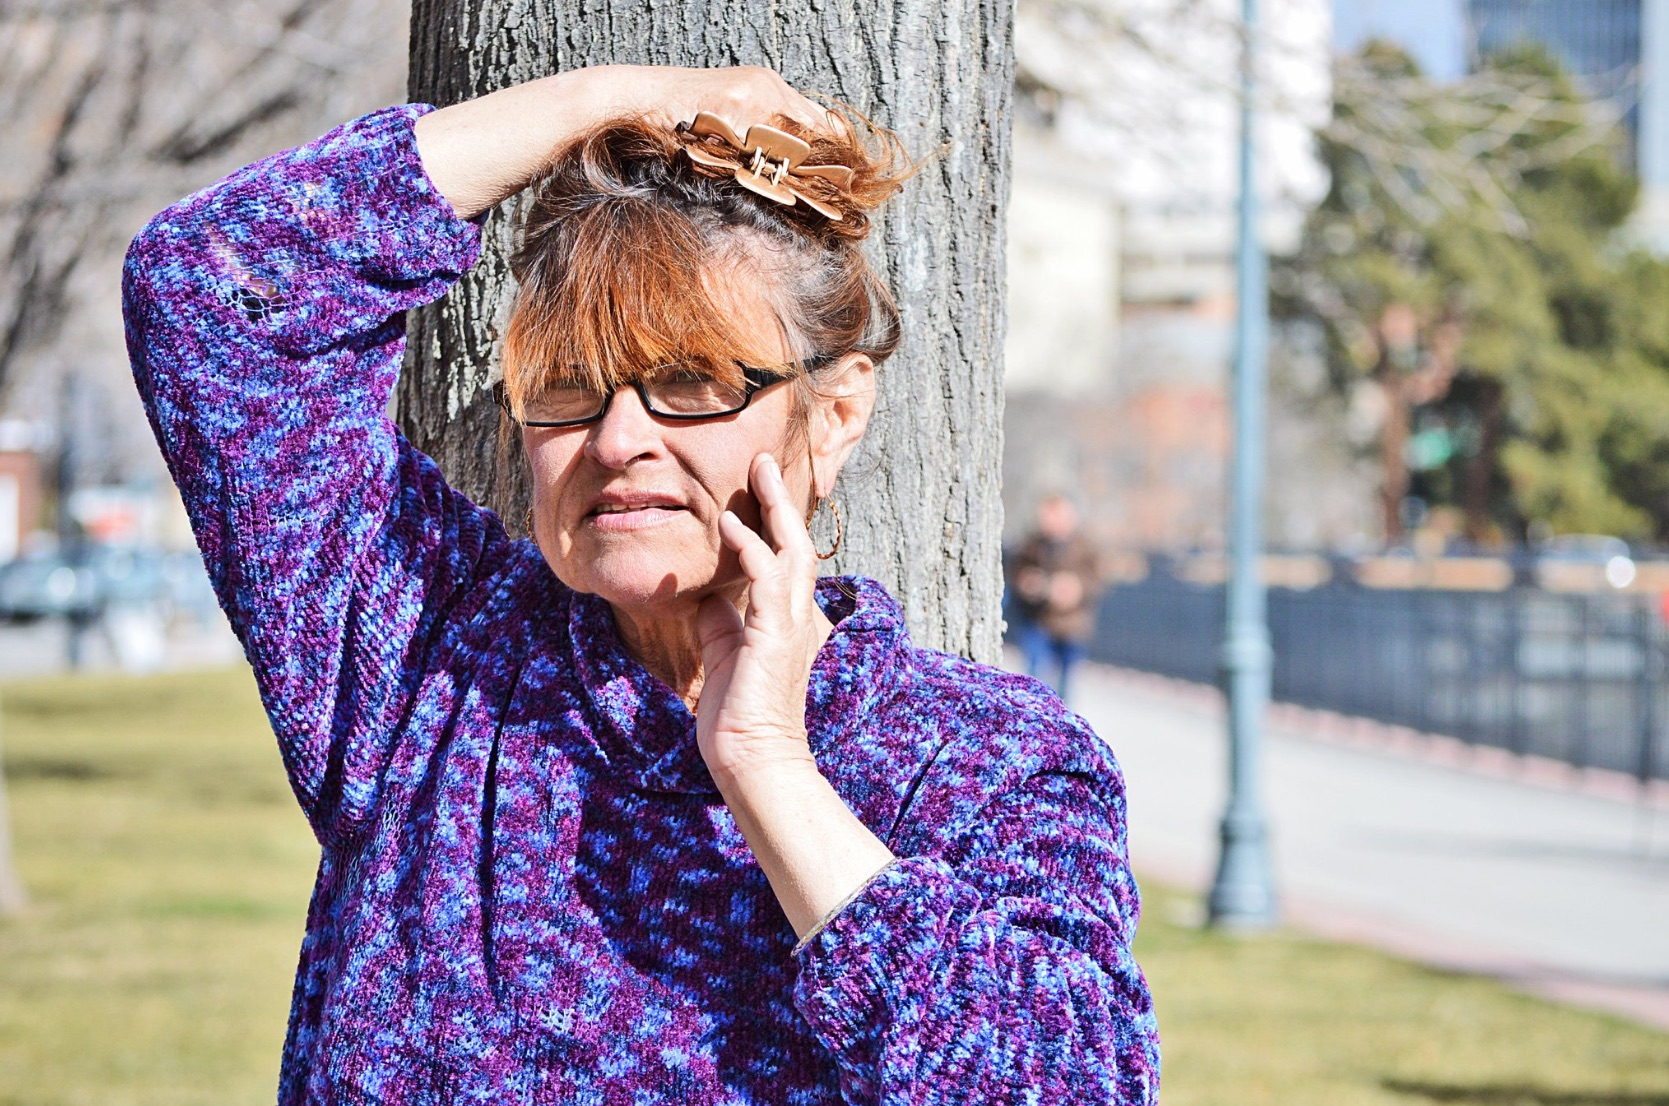 Despite windy conditions, Dora wanted a new Facebook profile photo taken of her.Photo by Janay Hagans.